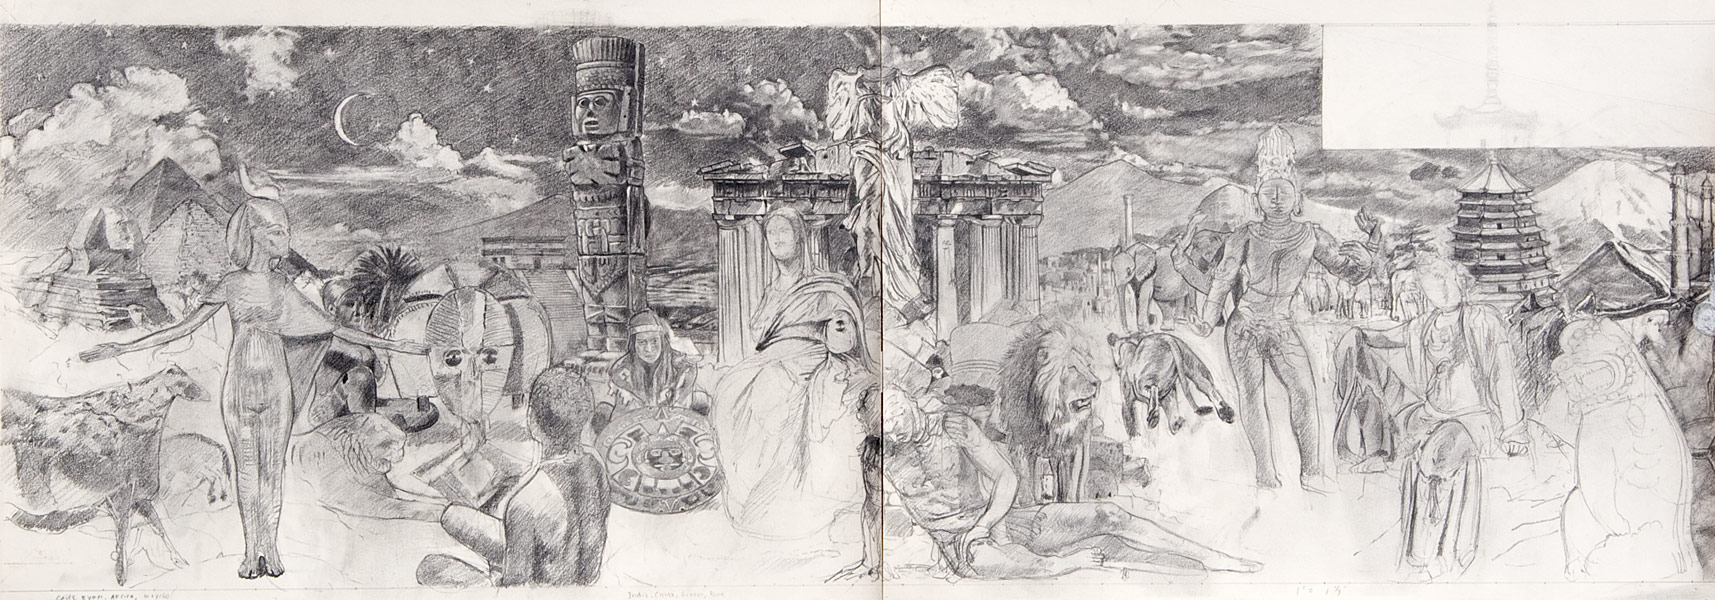 "Detail of Wilson Middle School Mural Drawing; 1st half (pencil on bristol, 19"" x 50"", 1993) Copyright © Manny Cosentino 1993. Drawings. Pencil composition sketch to scale of 1st half of mural; apprx 11' X 37.5'. Ancient, African, Meso-American, Greco_Roman, Indian and Asian art."